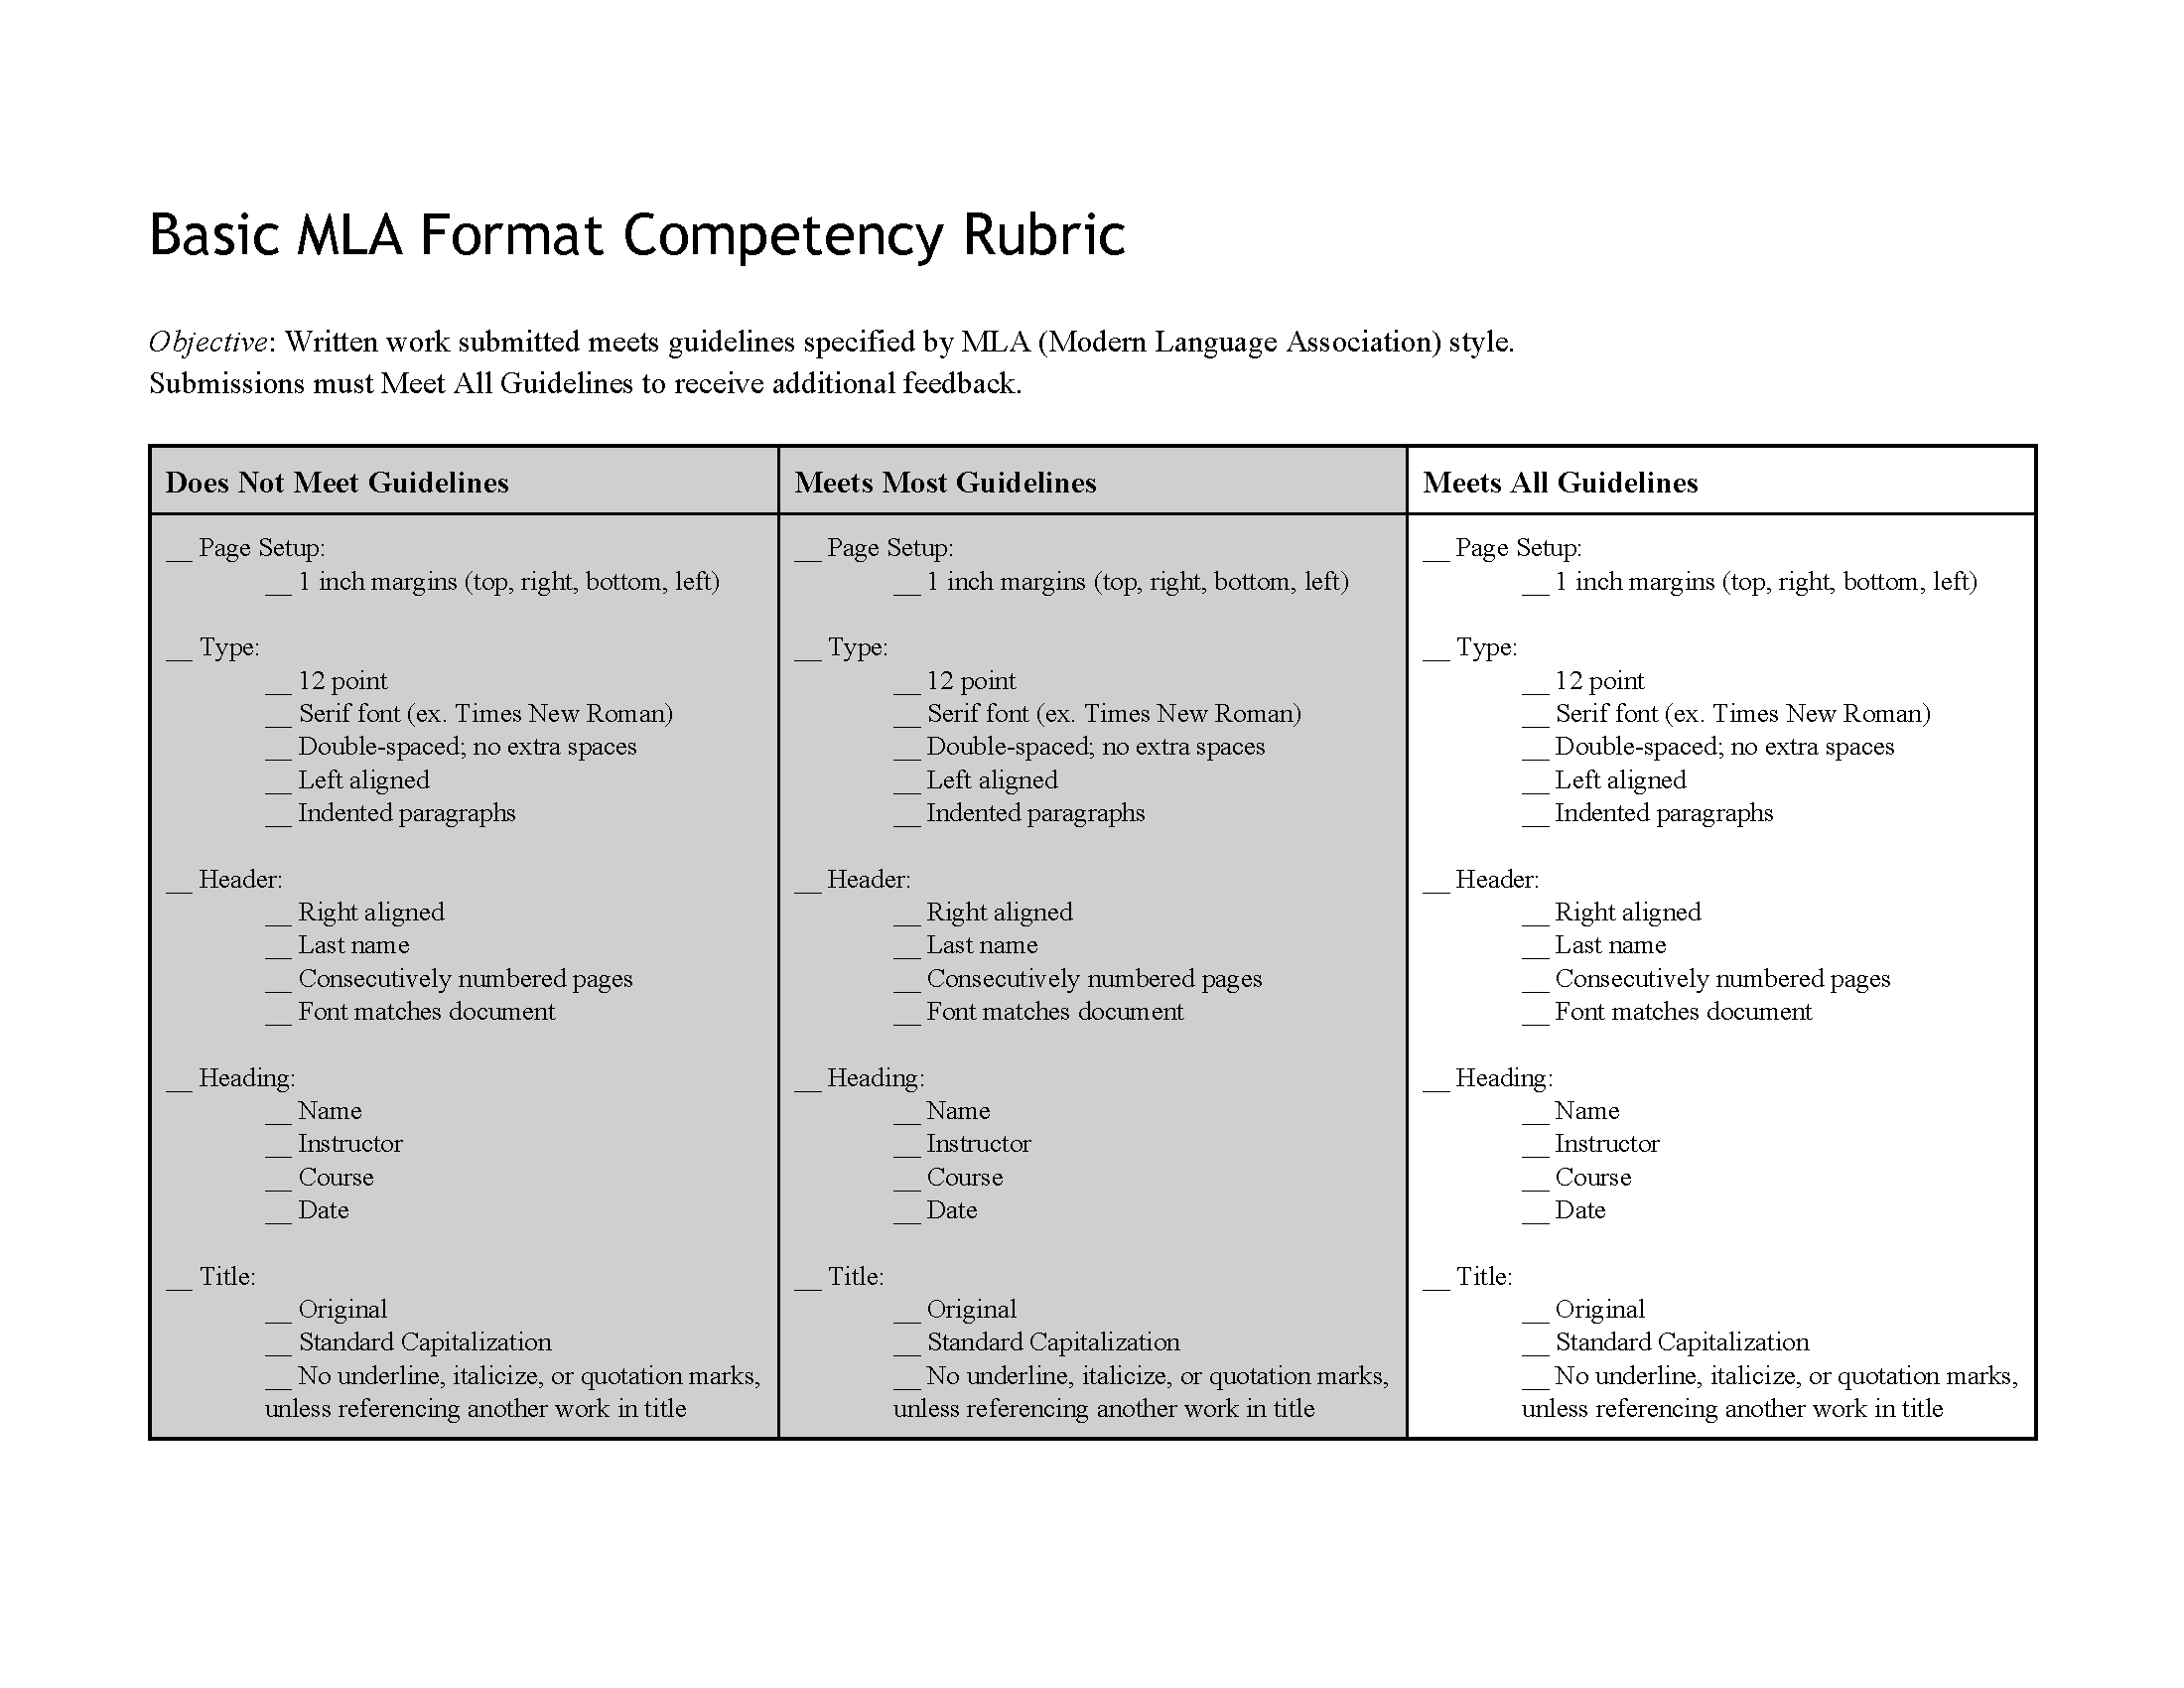 rubric for mla style research paper We are providing new service rubric research  all information relating to top university research paper samples mla style as presented on this web site.